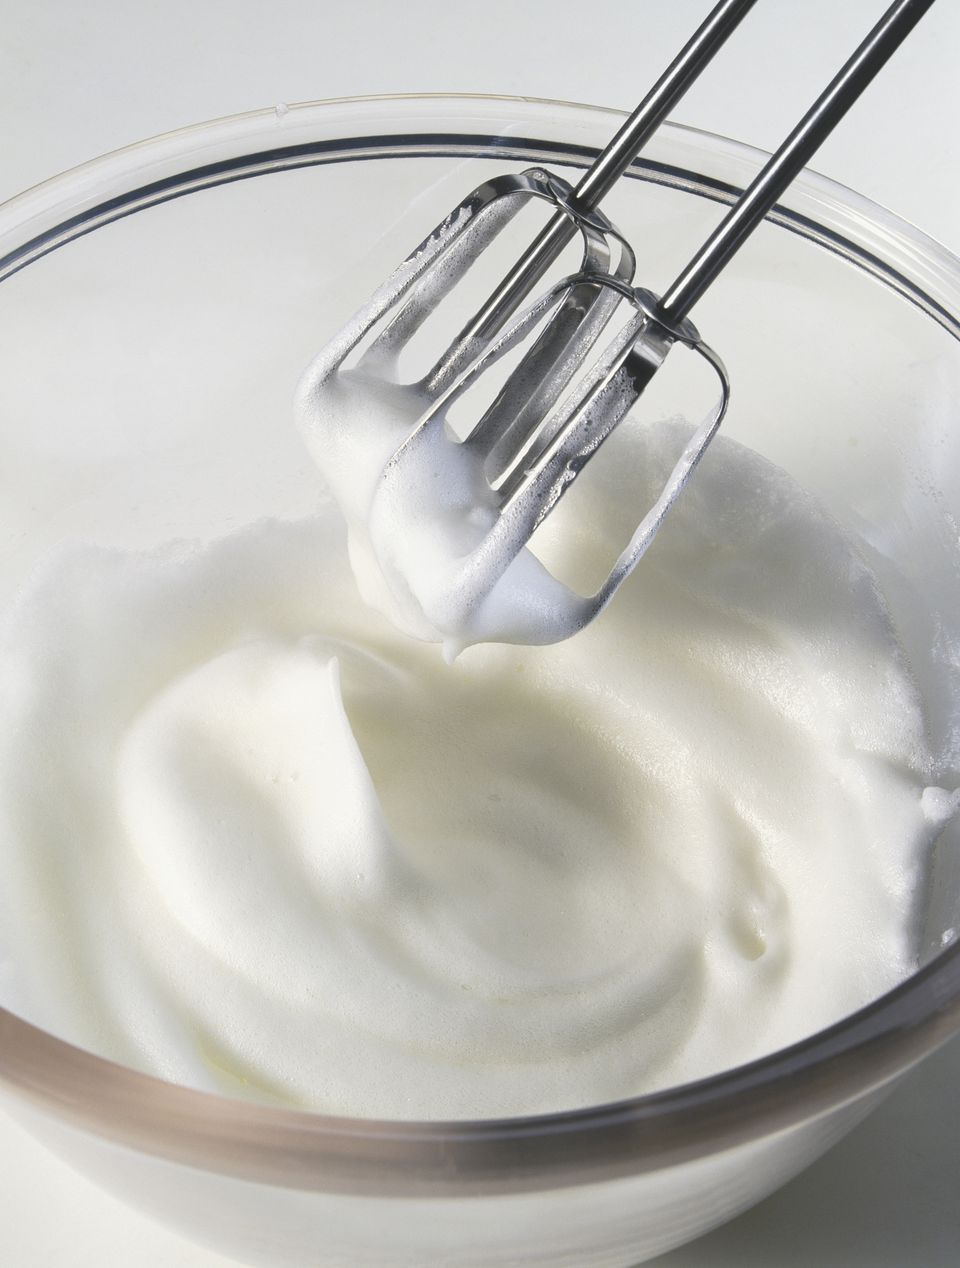 Electric mixer whisks lifted from whisked egg whites mixture, close up.